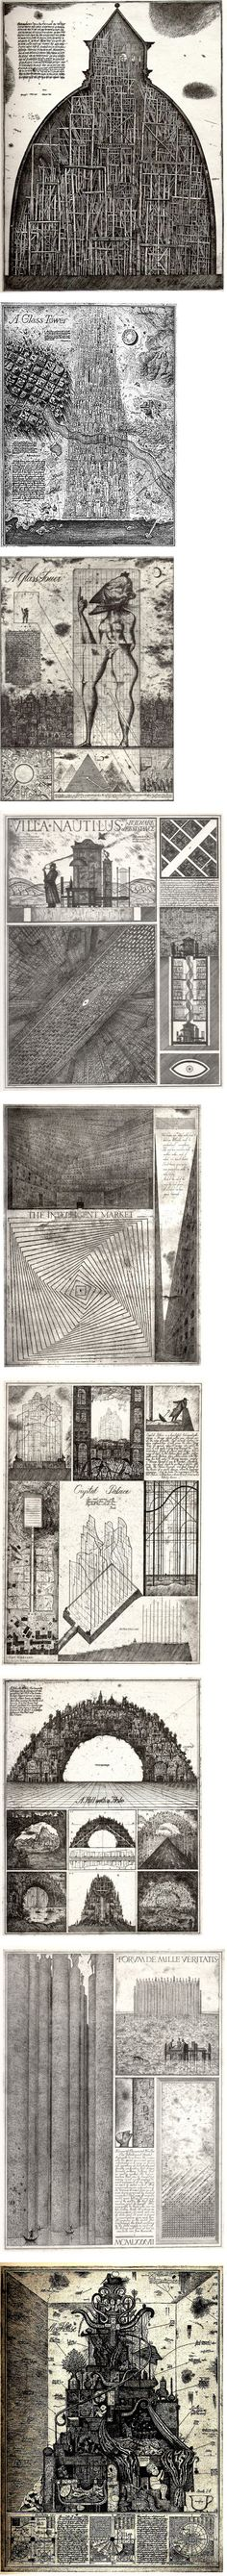 Brodsky & Utkin Illustration Art, Illustrations, Babel, Architectural Drawings, Woodblock Print, Gravure, Visual Identity, Line Drawing, Plans